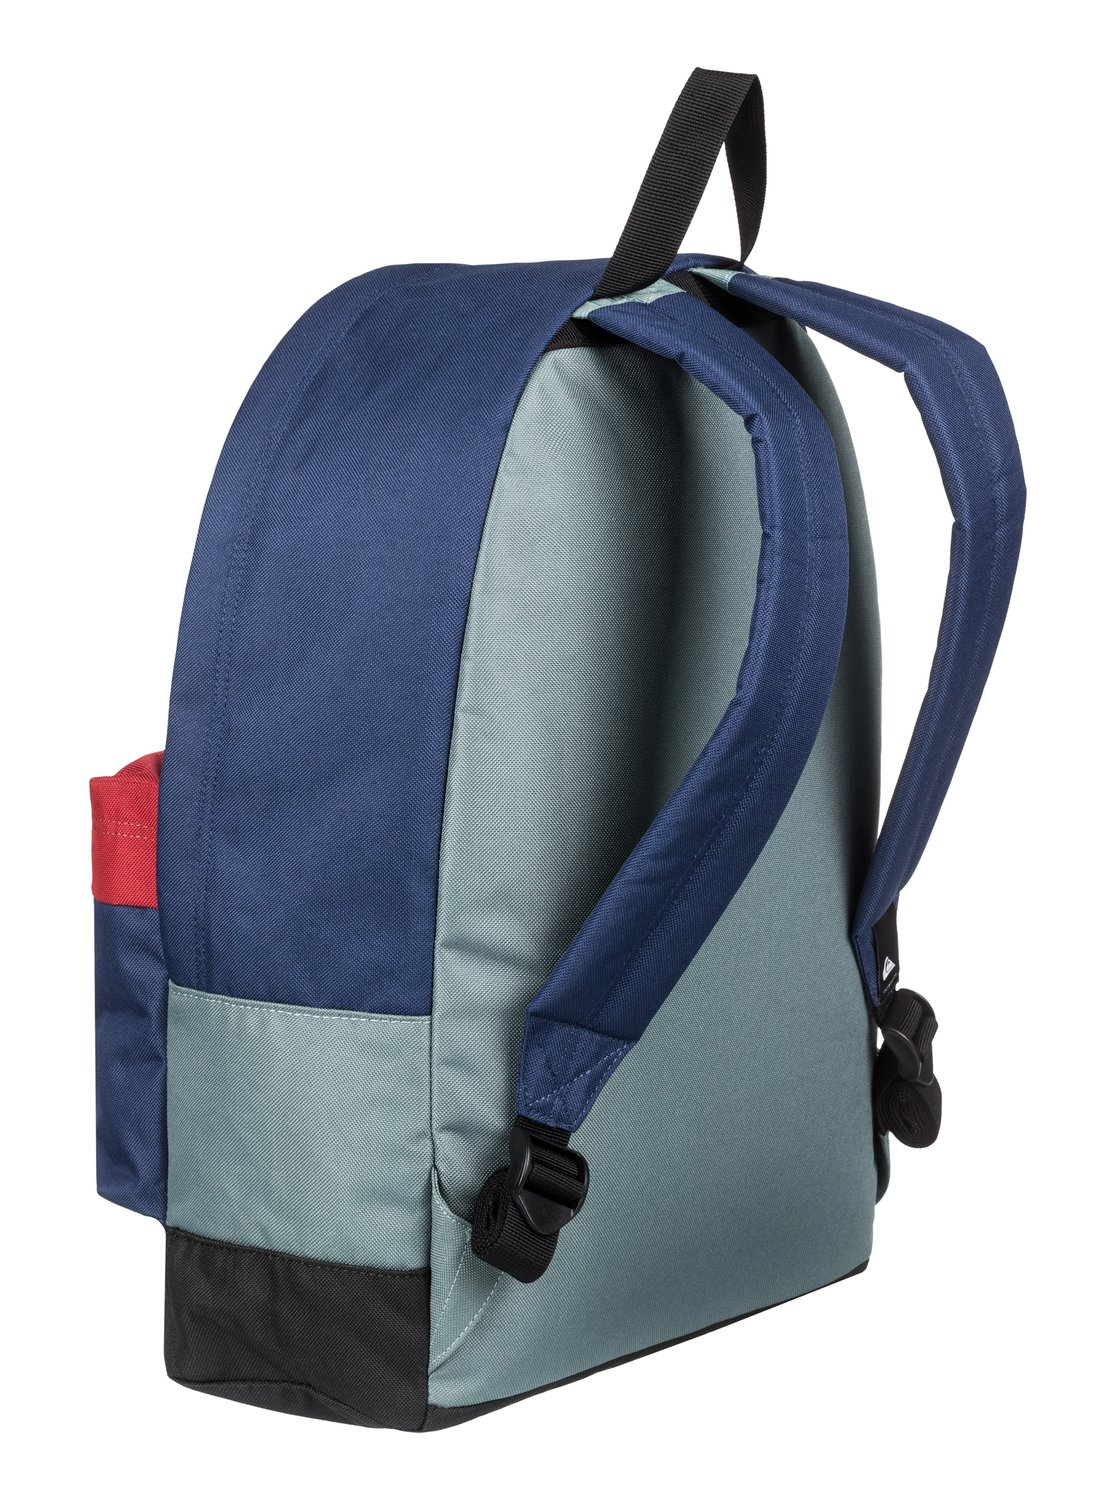 Quiksilver-Everyday-Poster-25L-Sac-a-dos-taille-moyenne-Homme miniature 10